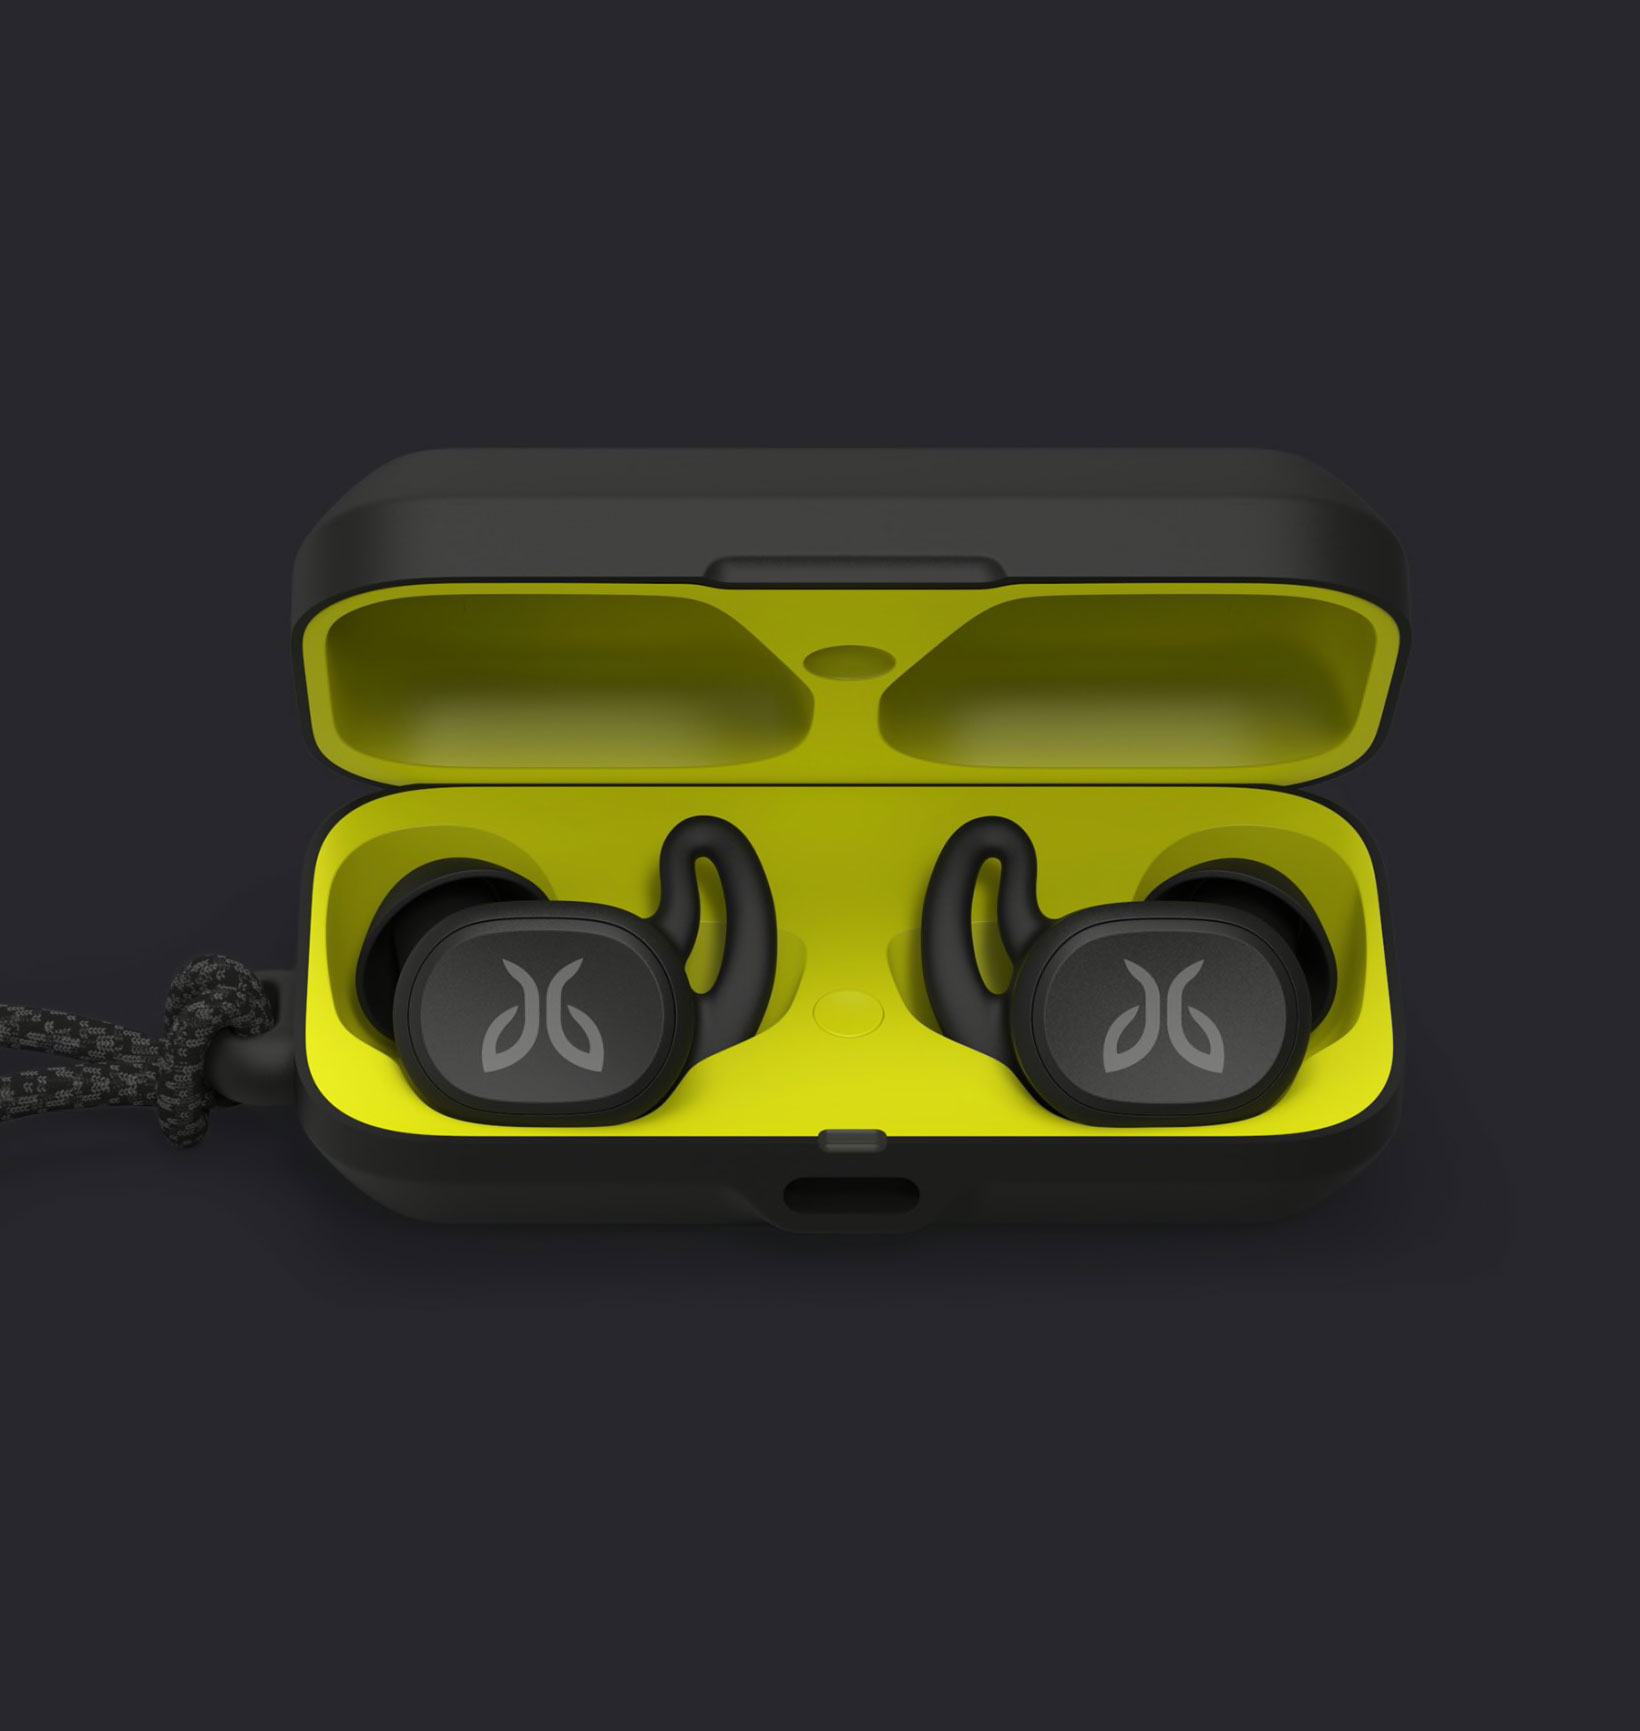 Father's Day gift ideas - Jaybird Vista earbuds